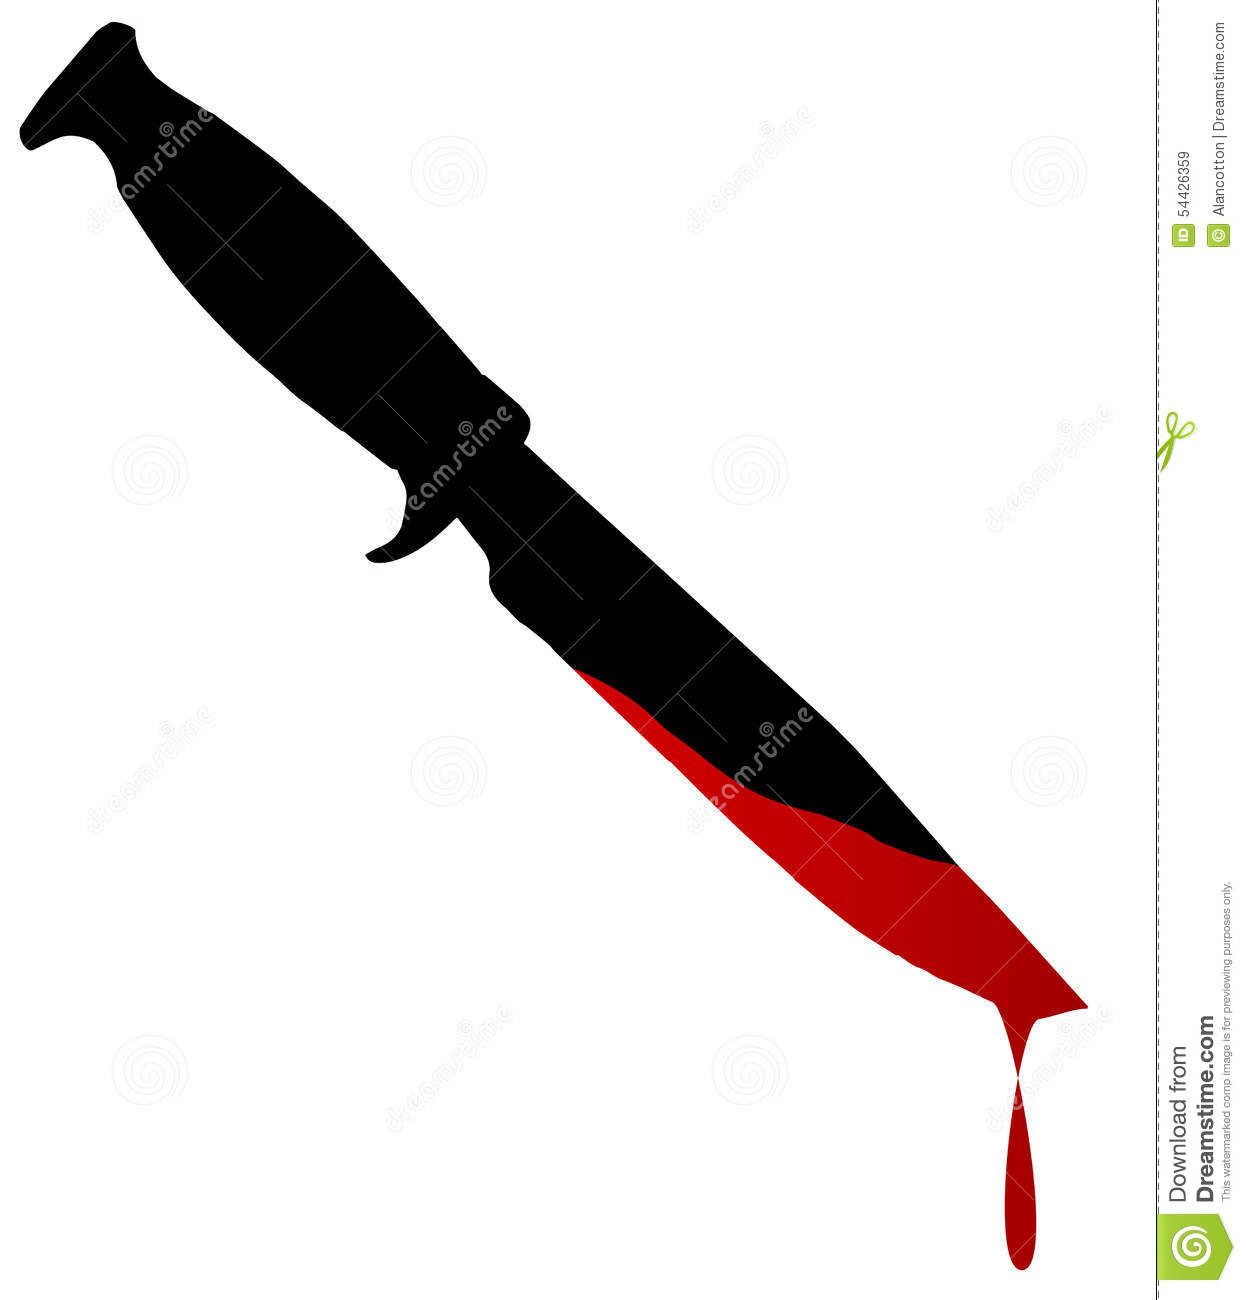 Bowie Knife Stock Illustrations – 113 Bowie Knife Stock Illustrations d69716e9d6bf